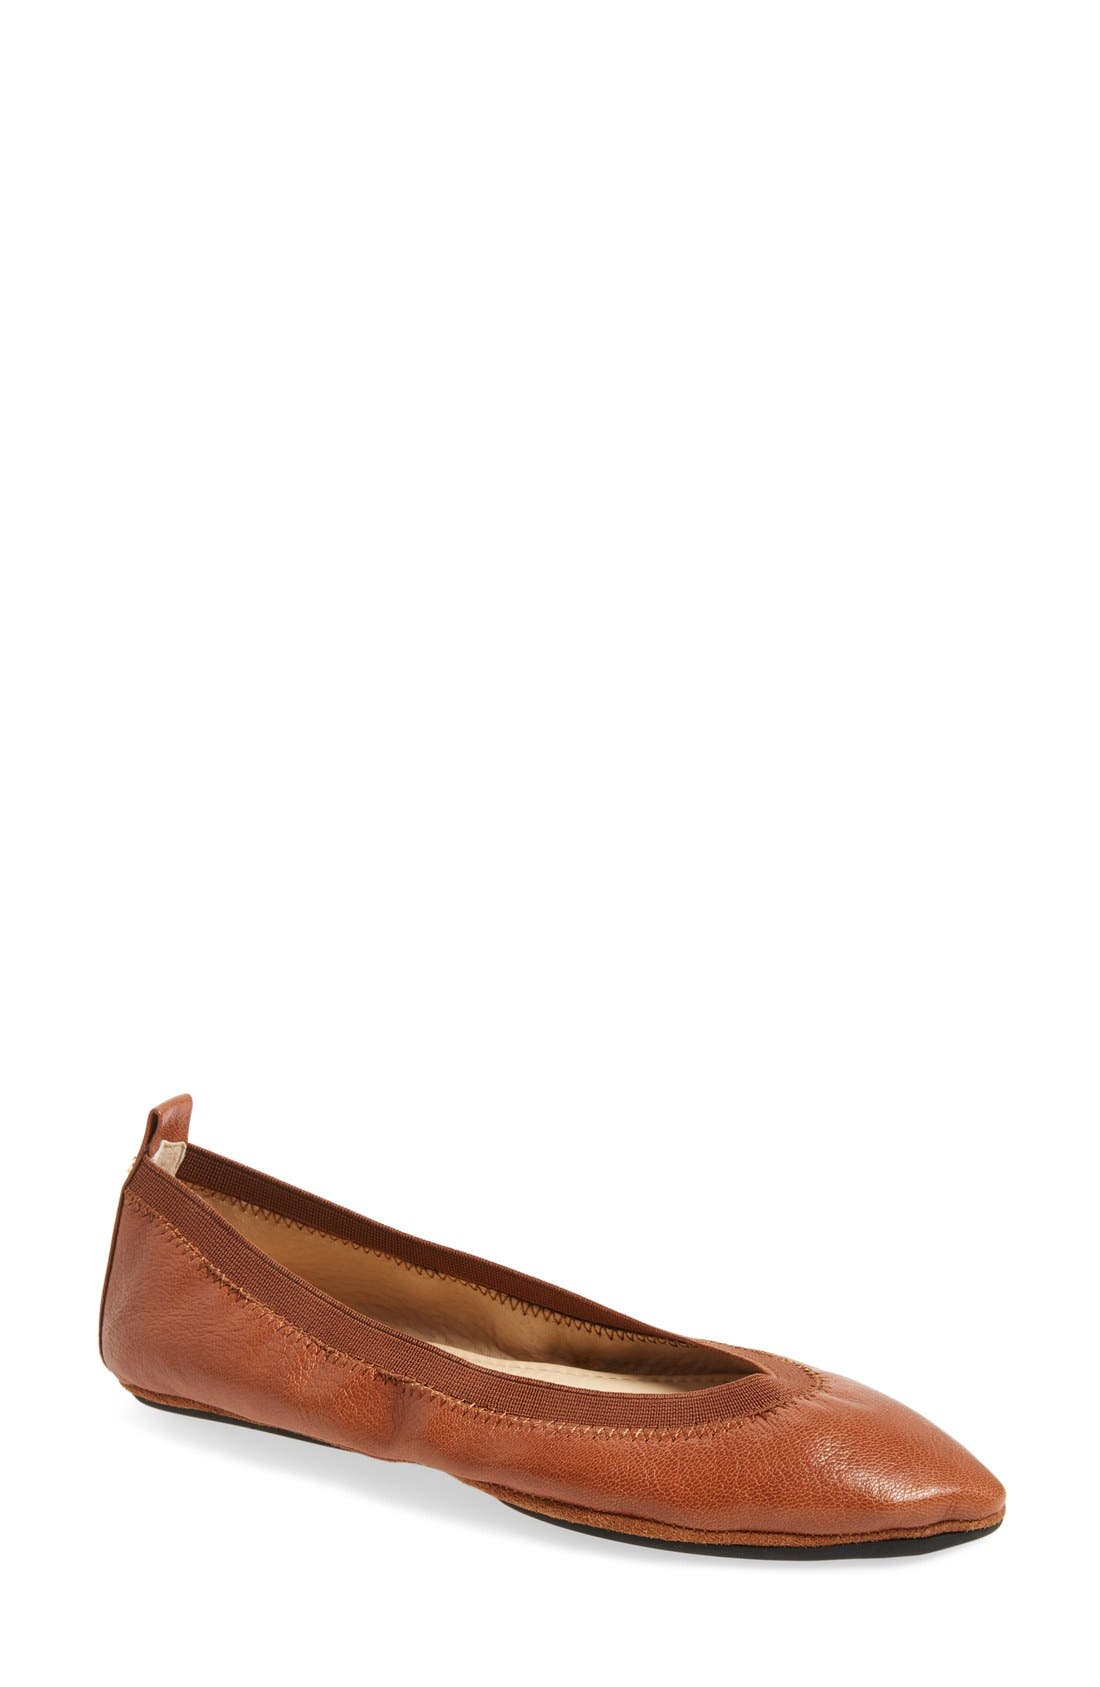 Vienna Foldable Pointy Toe Flat,                             Main thumbnail 1, color,                             Dark Whiskey Leather